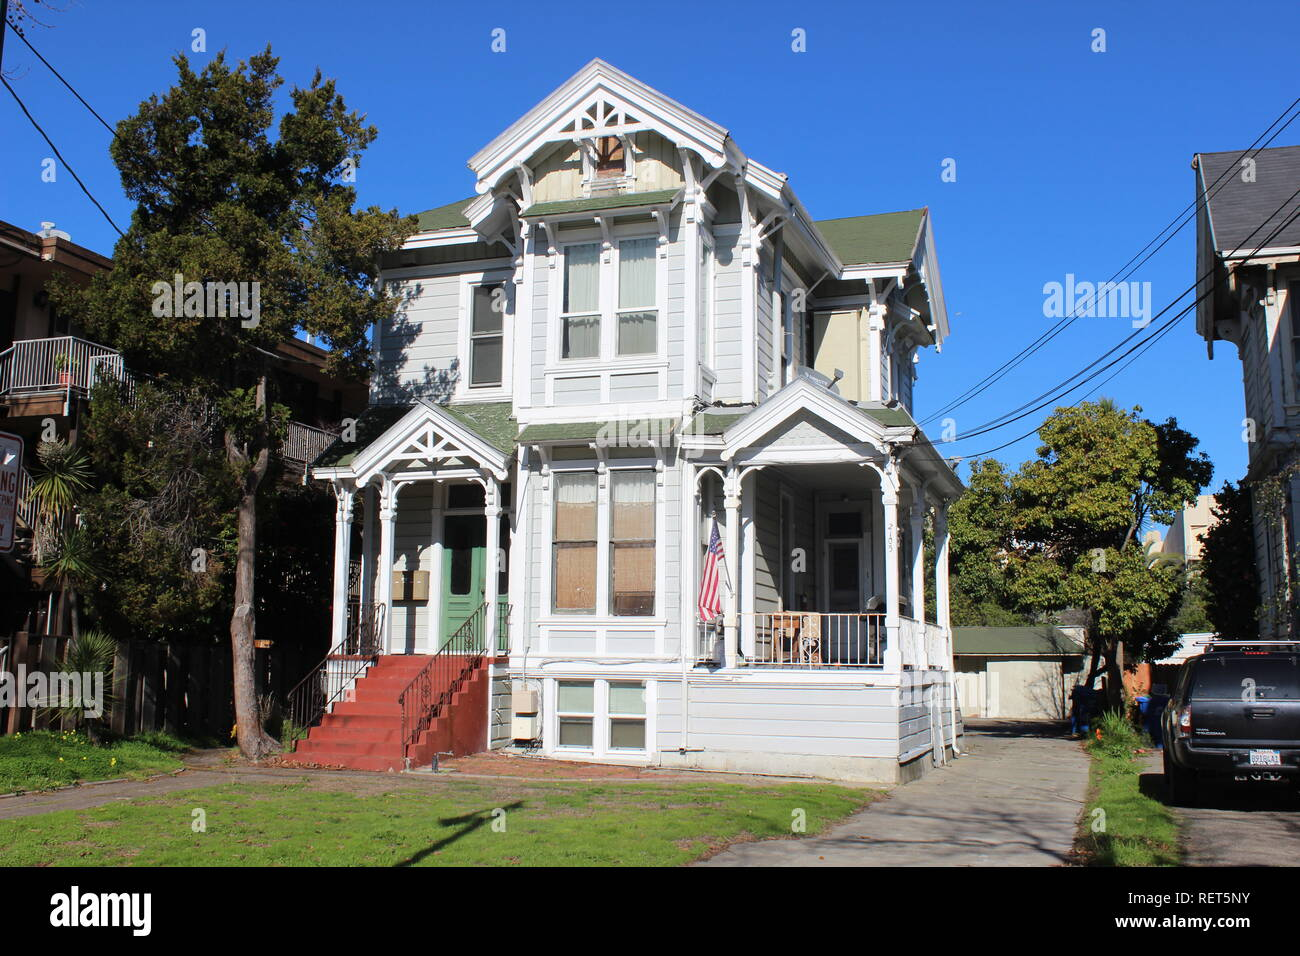 Eastlake House, built 1888, Alameda, California - Stock Image